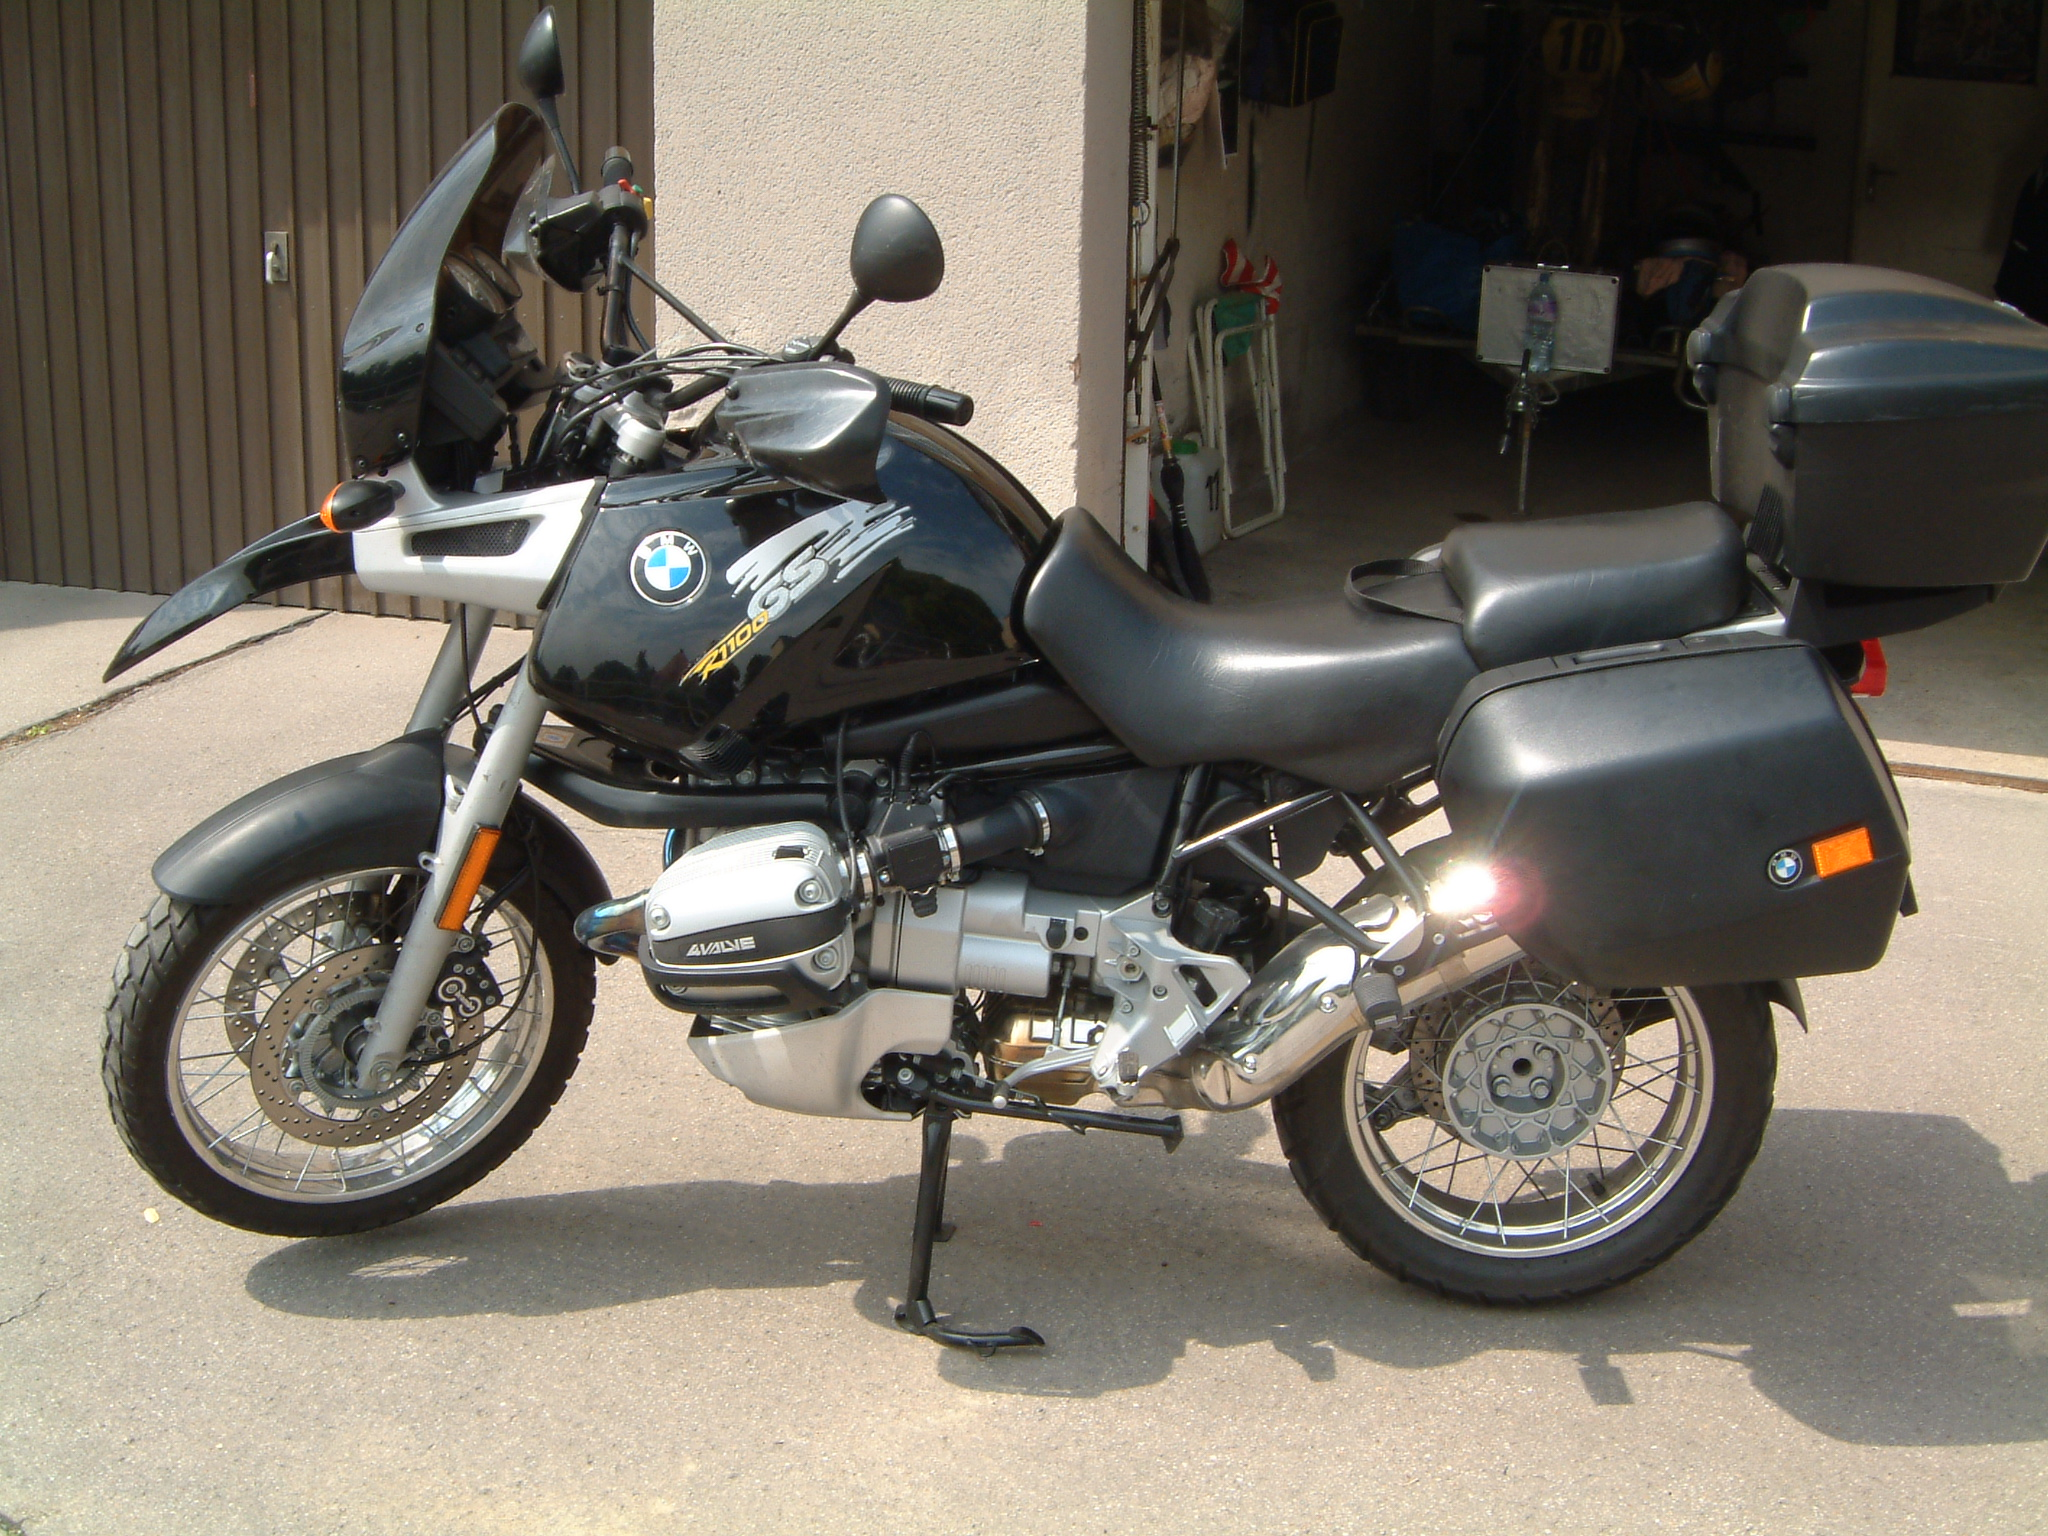 BMW R1100GS 1998 images #6335